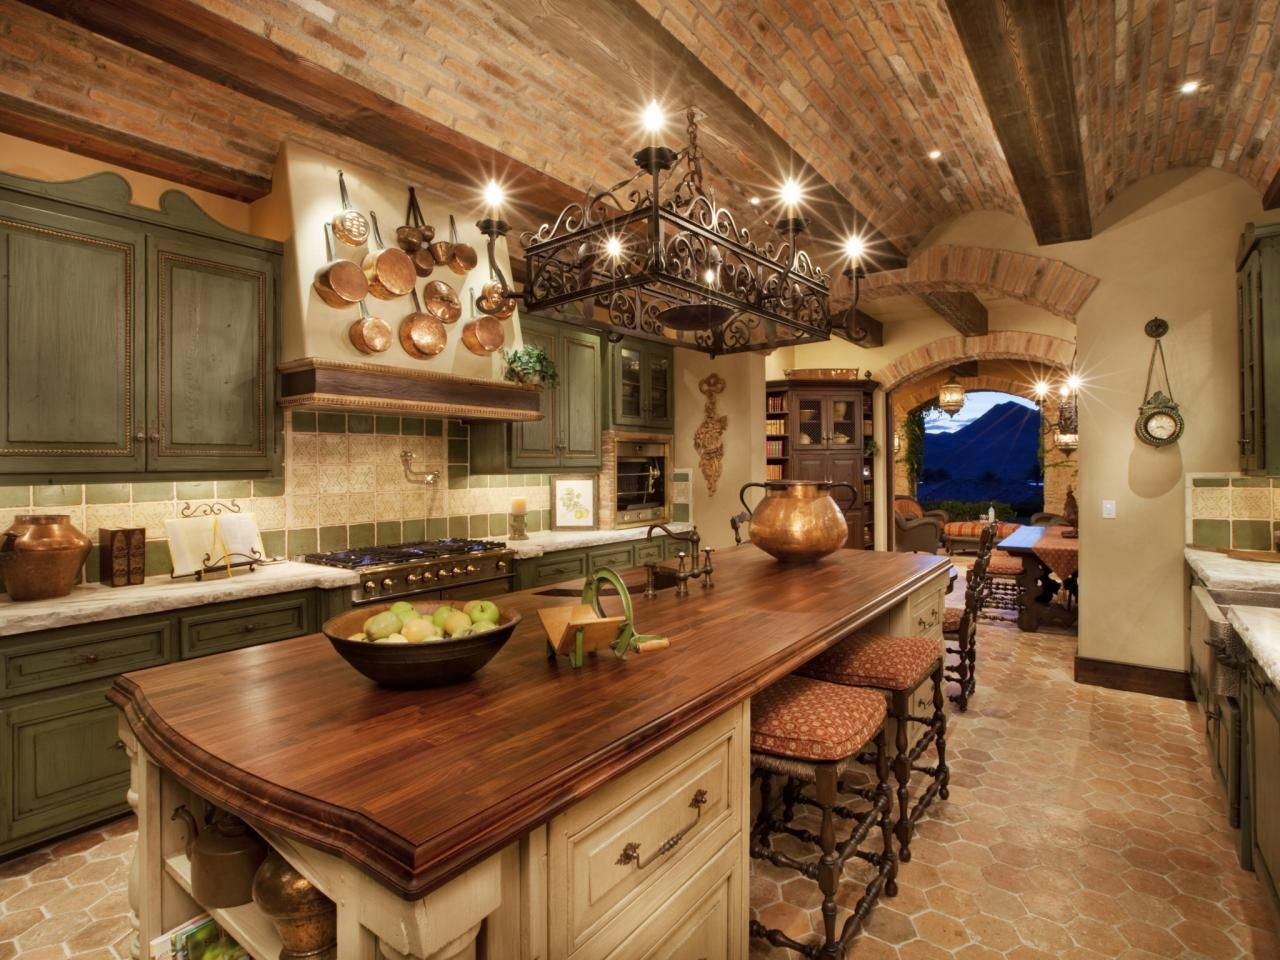 Italian Kitchen Designers Tuscan Kitchen Design Pictures Ideas & Tips From  Tuscan